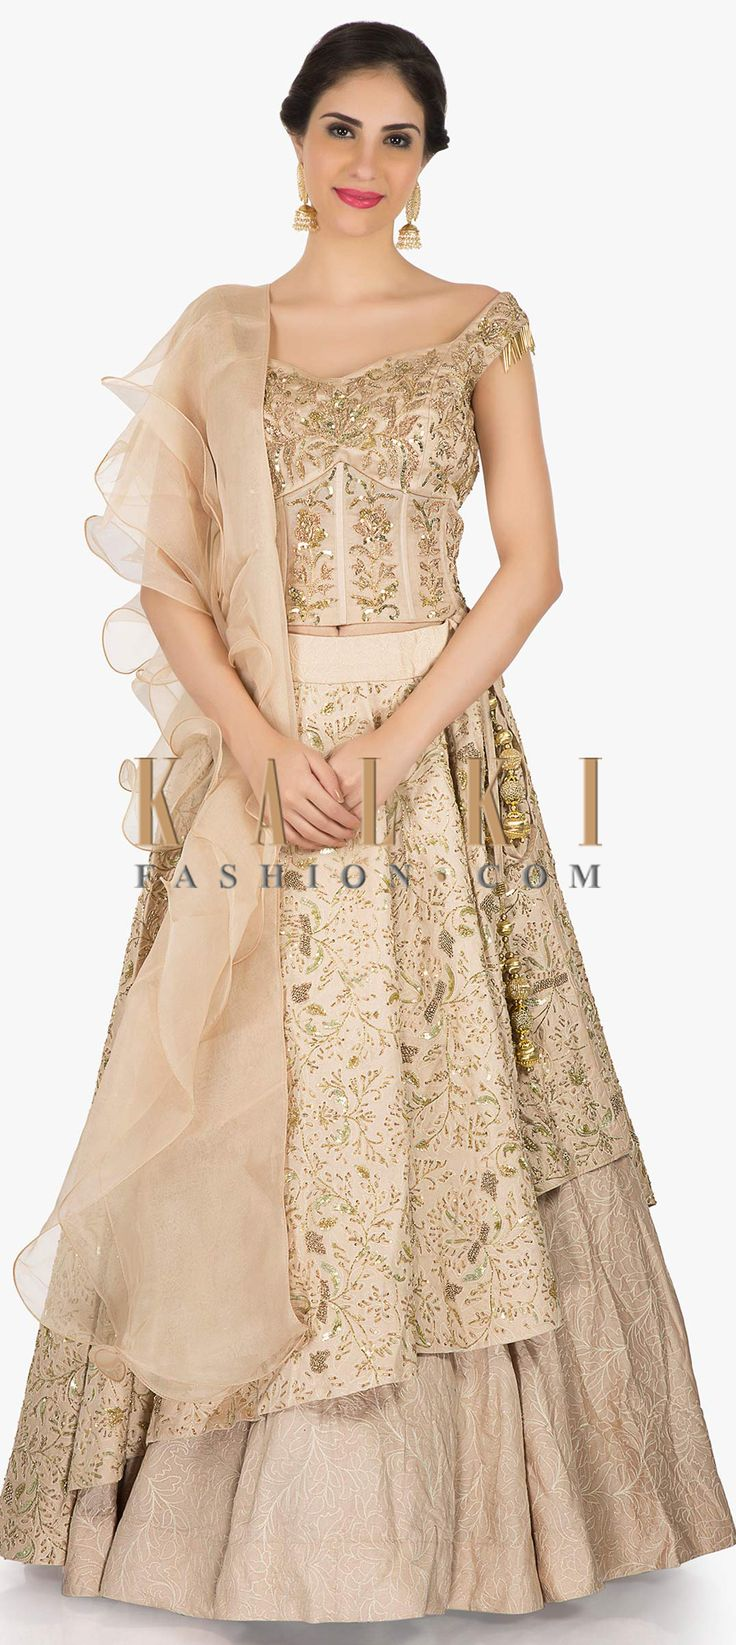 Buy Online from the link below. We ship worldwide (Free Shipping over US$100)  Click Anywhere to Tag Beige Lehenga in silk beautified with zardosi and sequin work only on Kalki Look all hatke in your sister's reception party by wearing this beige lehenga and top. The skirt and top in silk is beautified using the zardosi and sequin embroidery work. The corset blouse displays fancy tassels at the sleeves. The dupatta will definitely grab attention with its frill design that it exhibits.